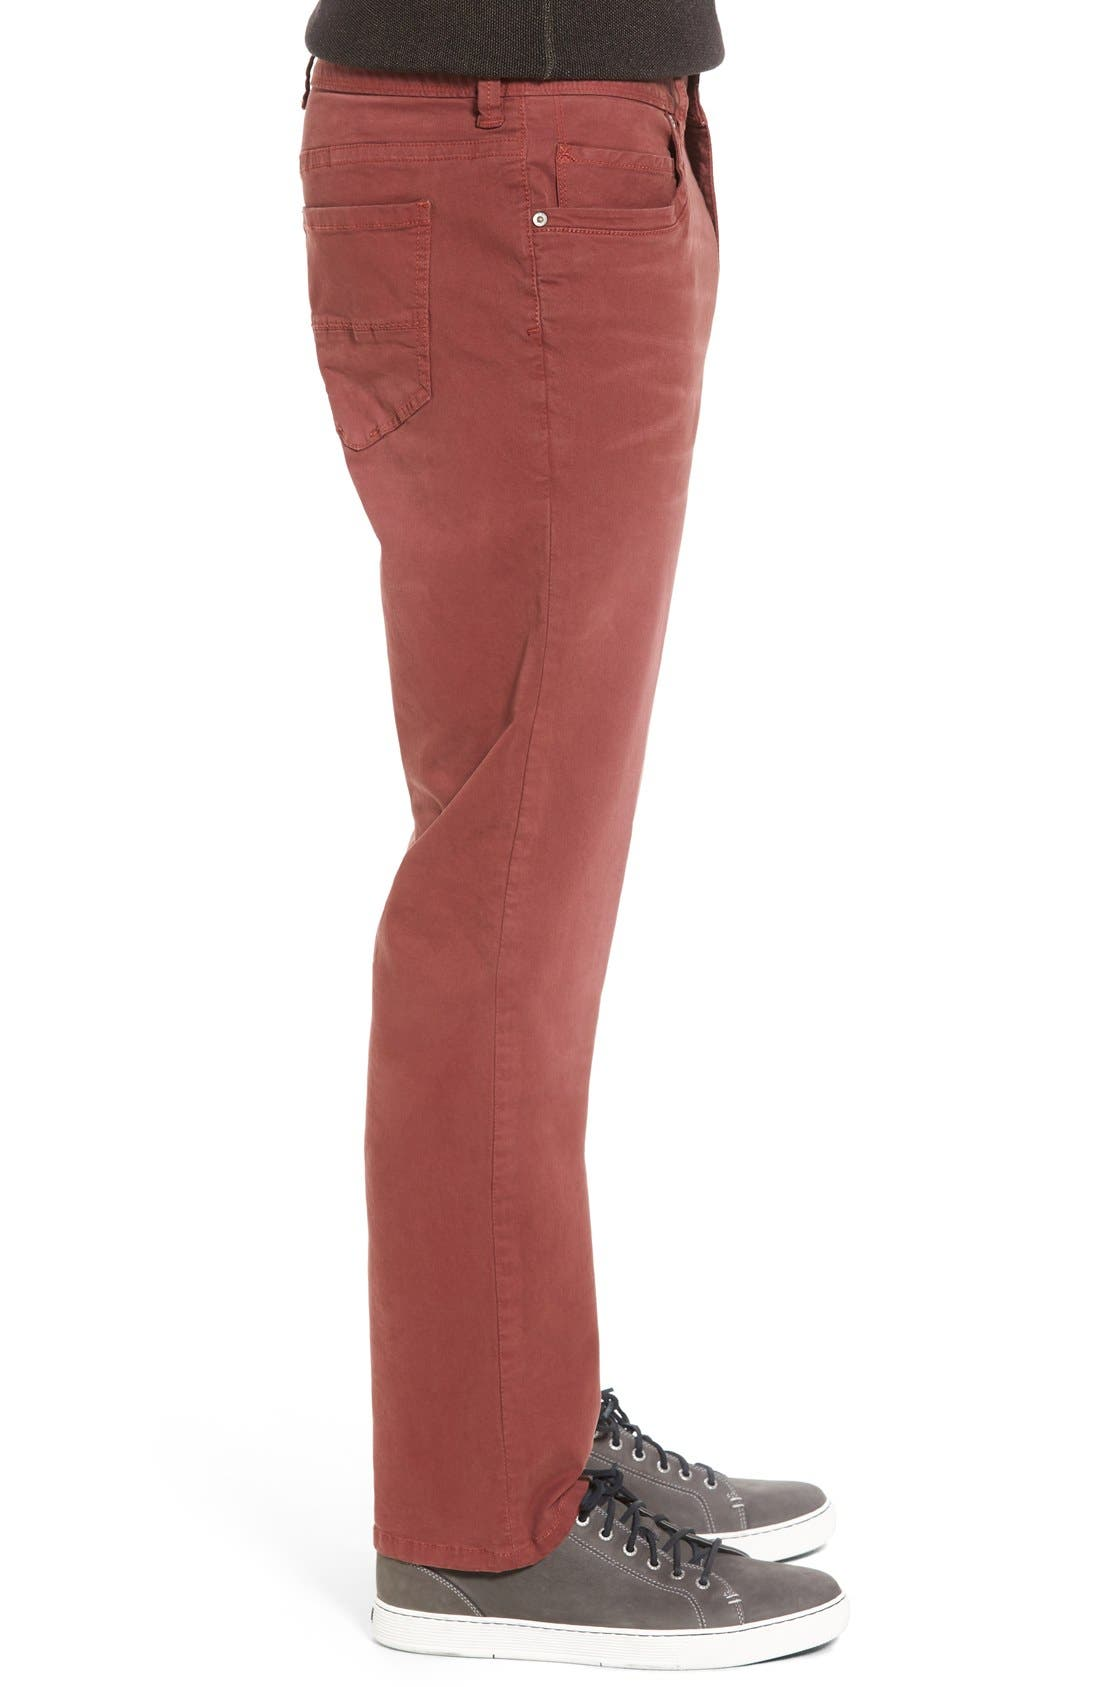 'Santiago' Washed Twill Pants,                             Alternate thumbnail 3, color,                             Maroon